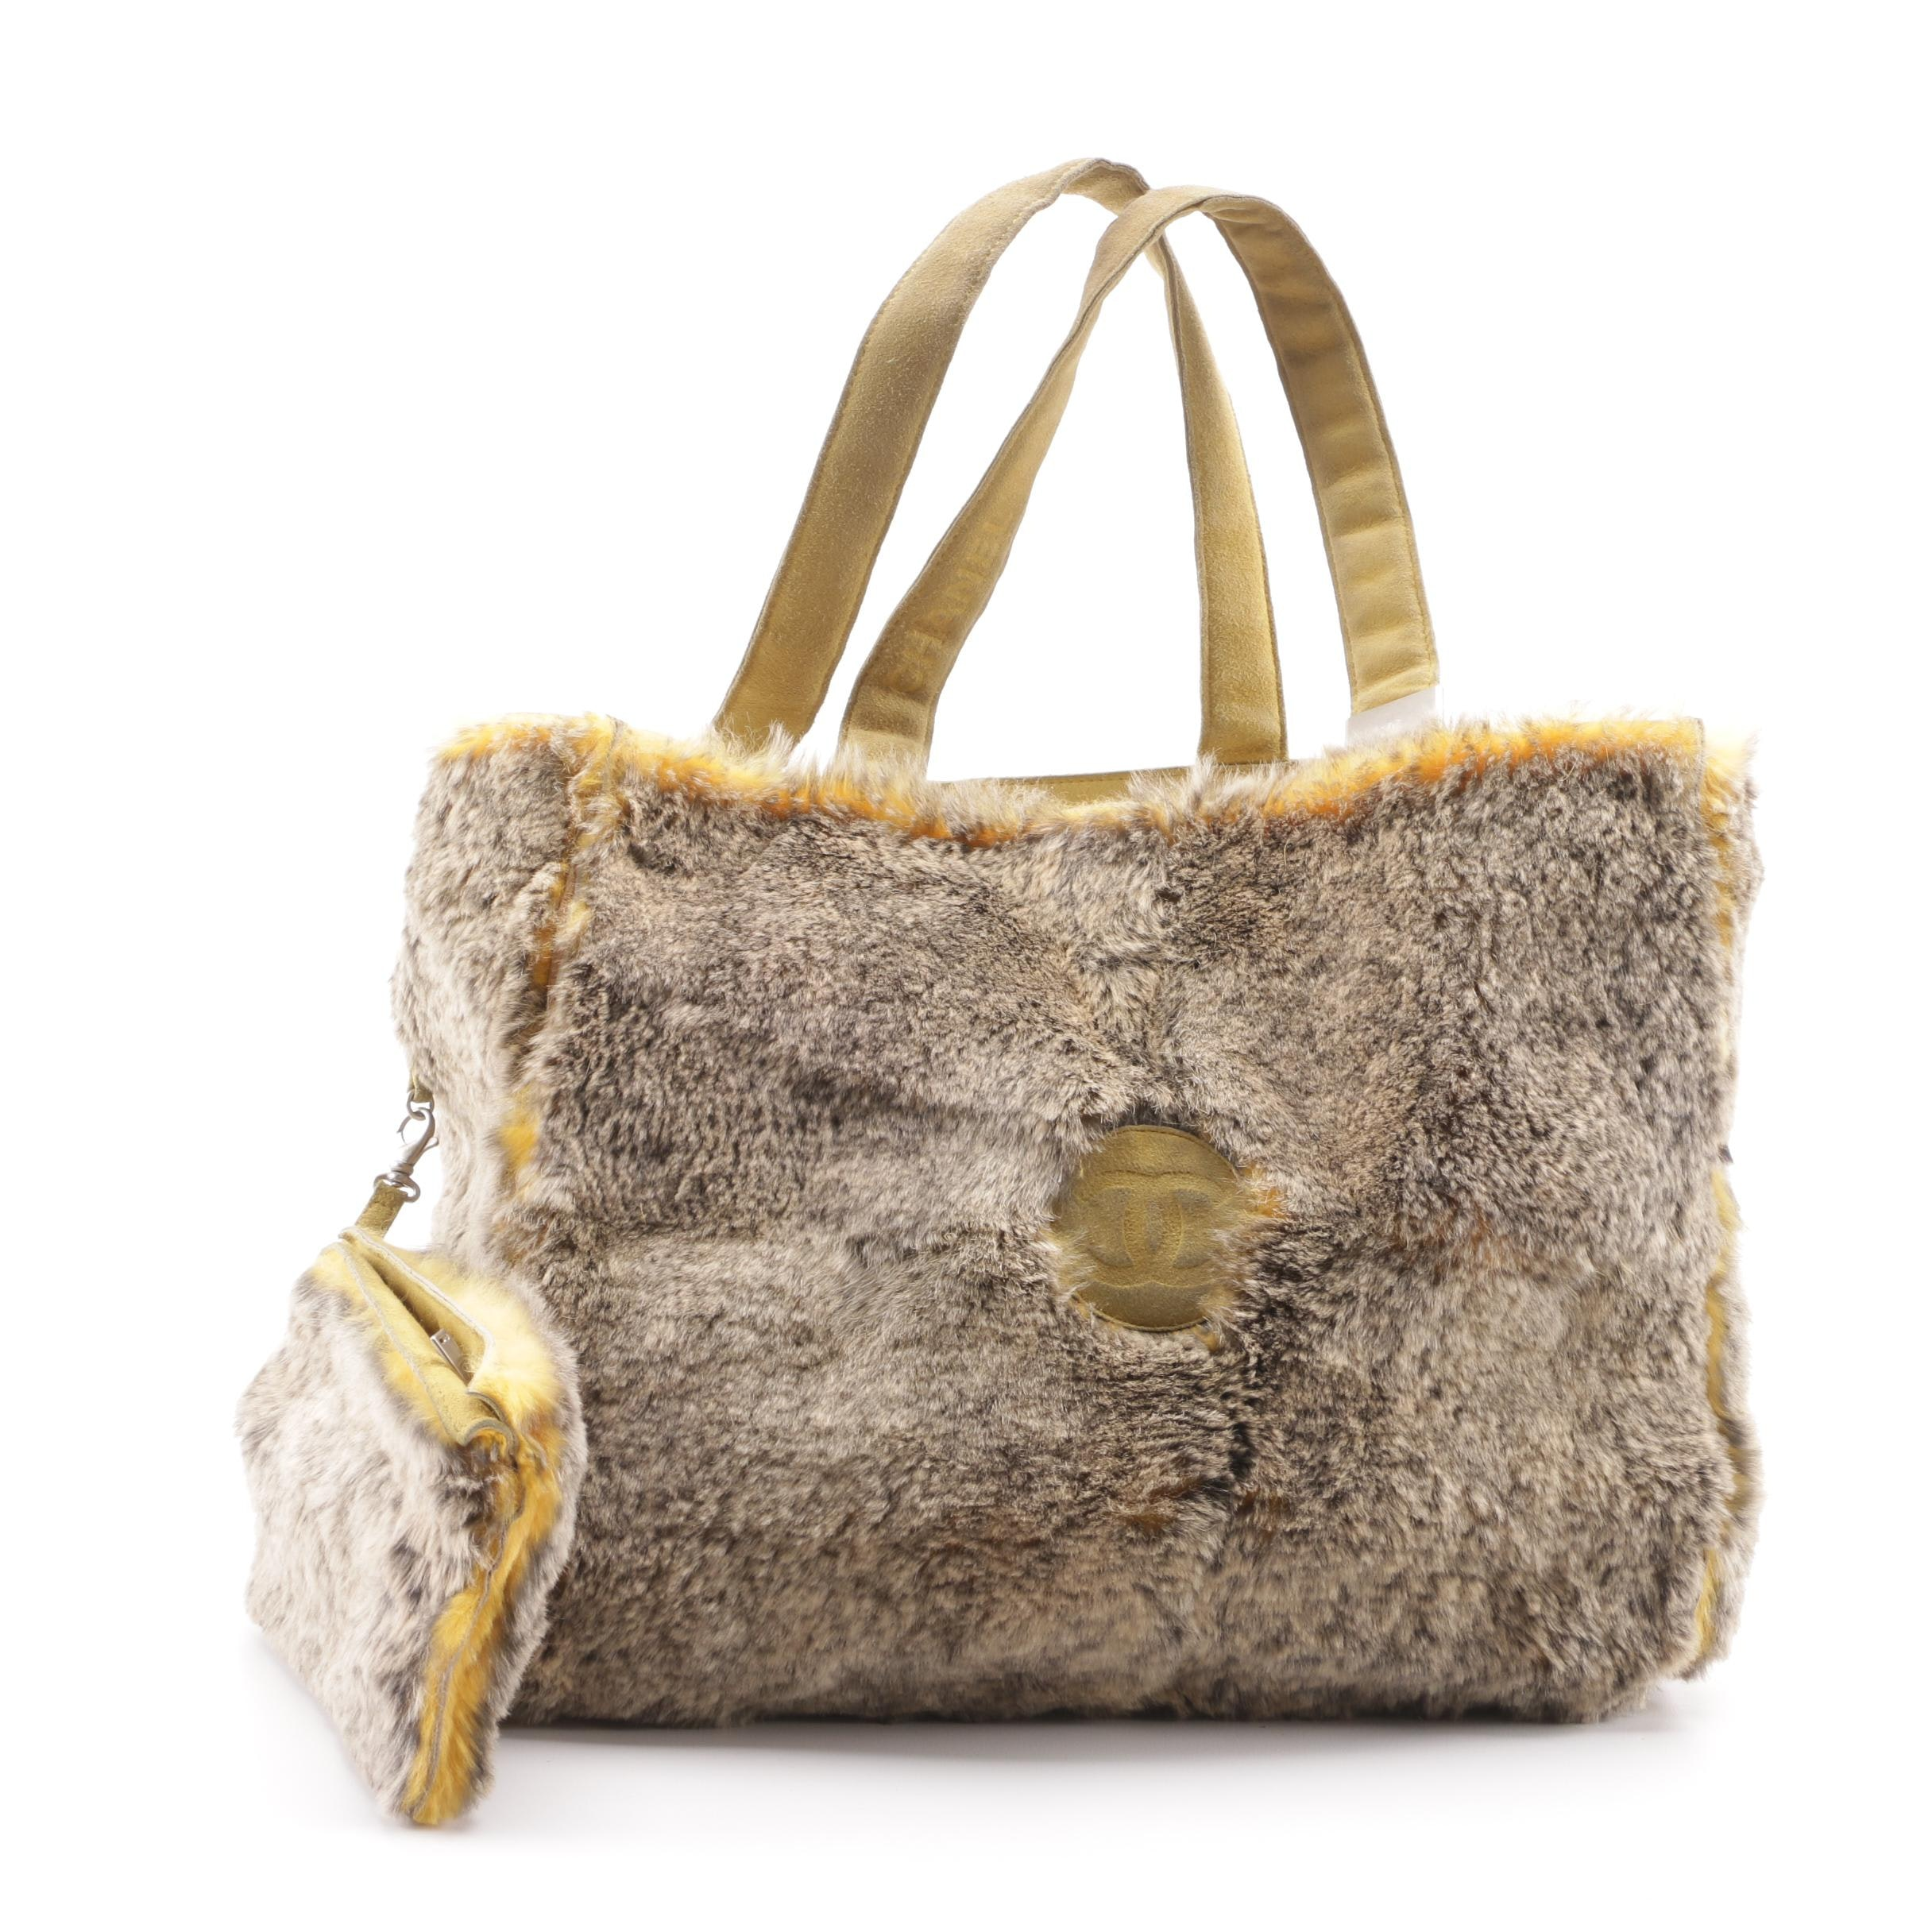 Circa 2000 Chanel Lapin Dyed Rabbit Fur Tote with Pouch